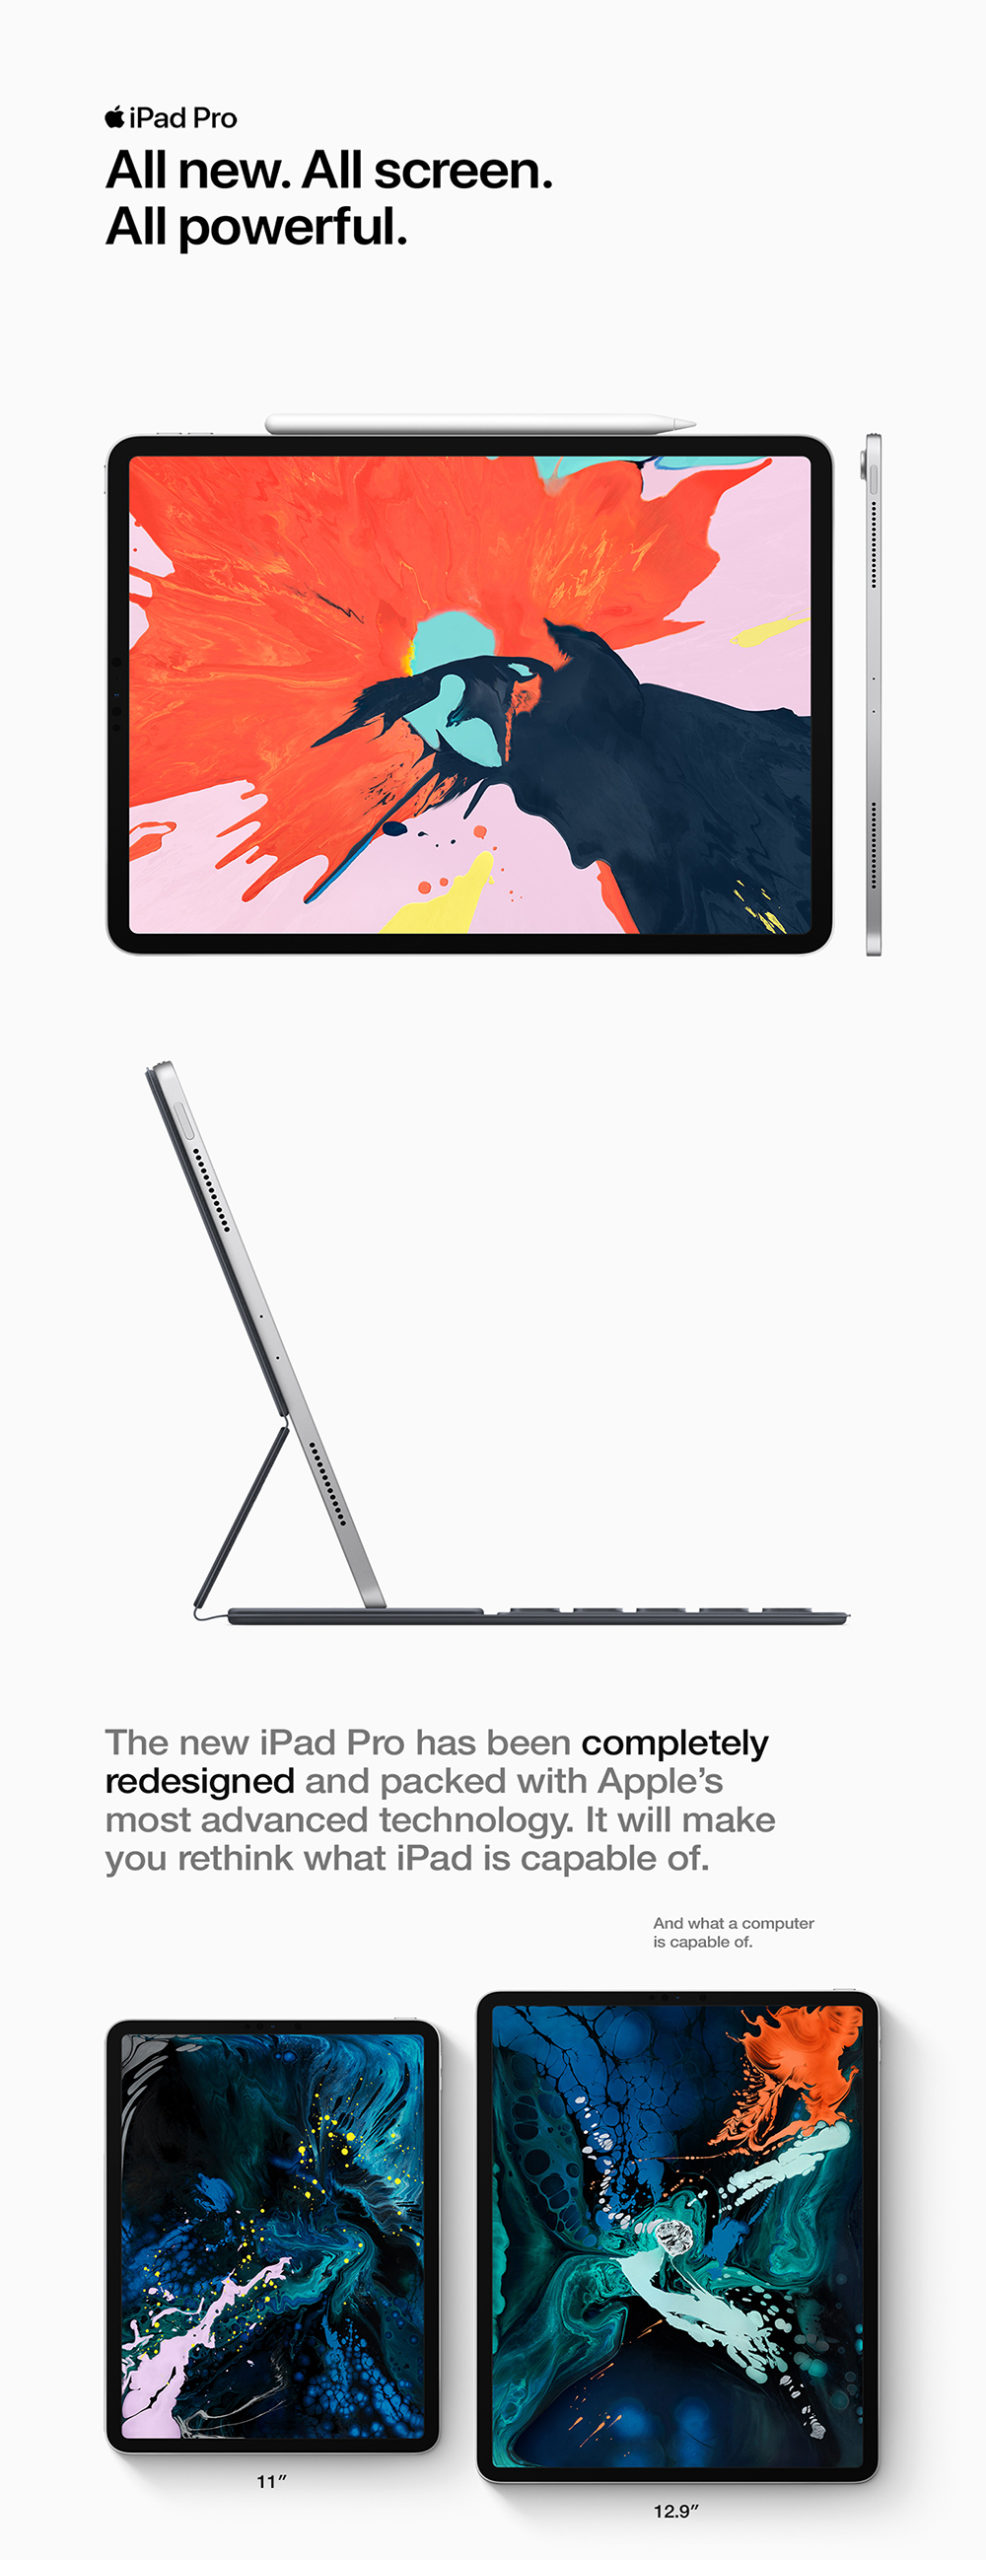 ipad pro description and features